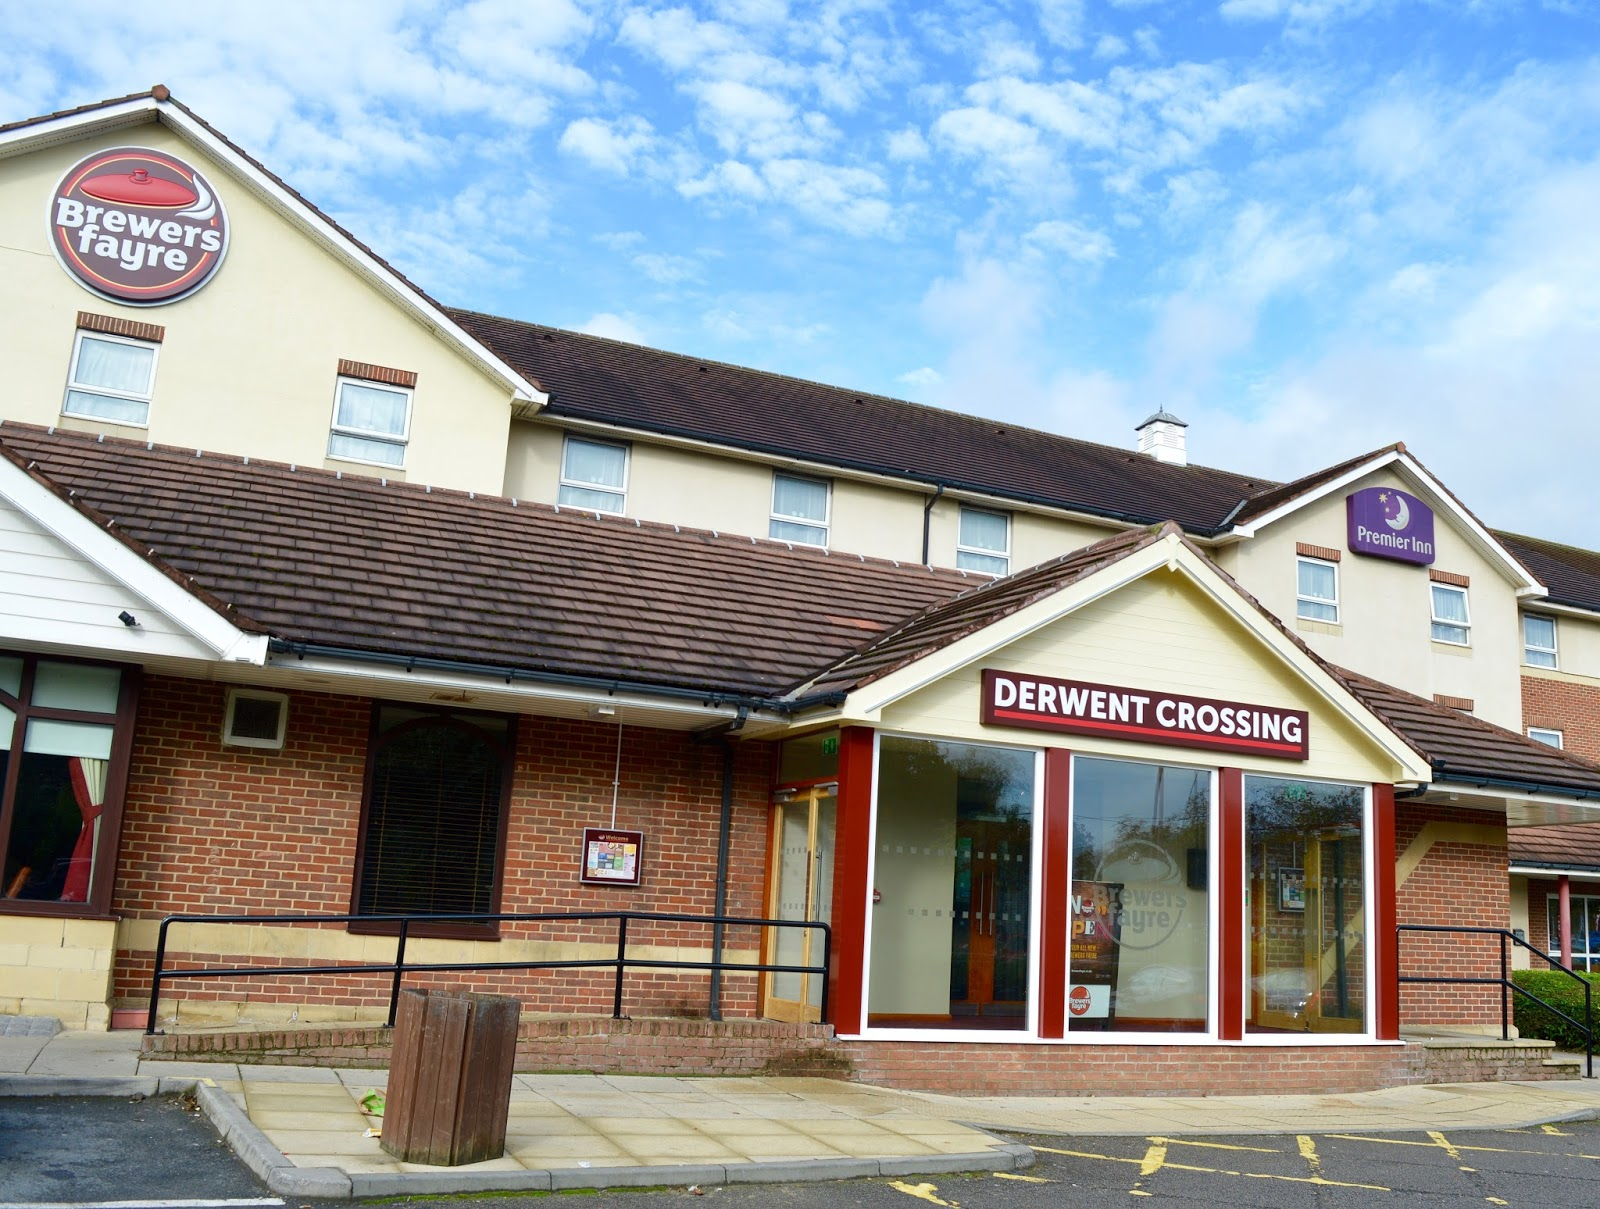 Derwent Crossing Brewers Fayre near intu Metrocentre | Play Area & Children's Menu Review - exterior and location